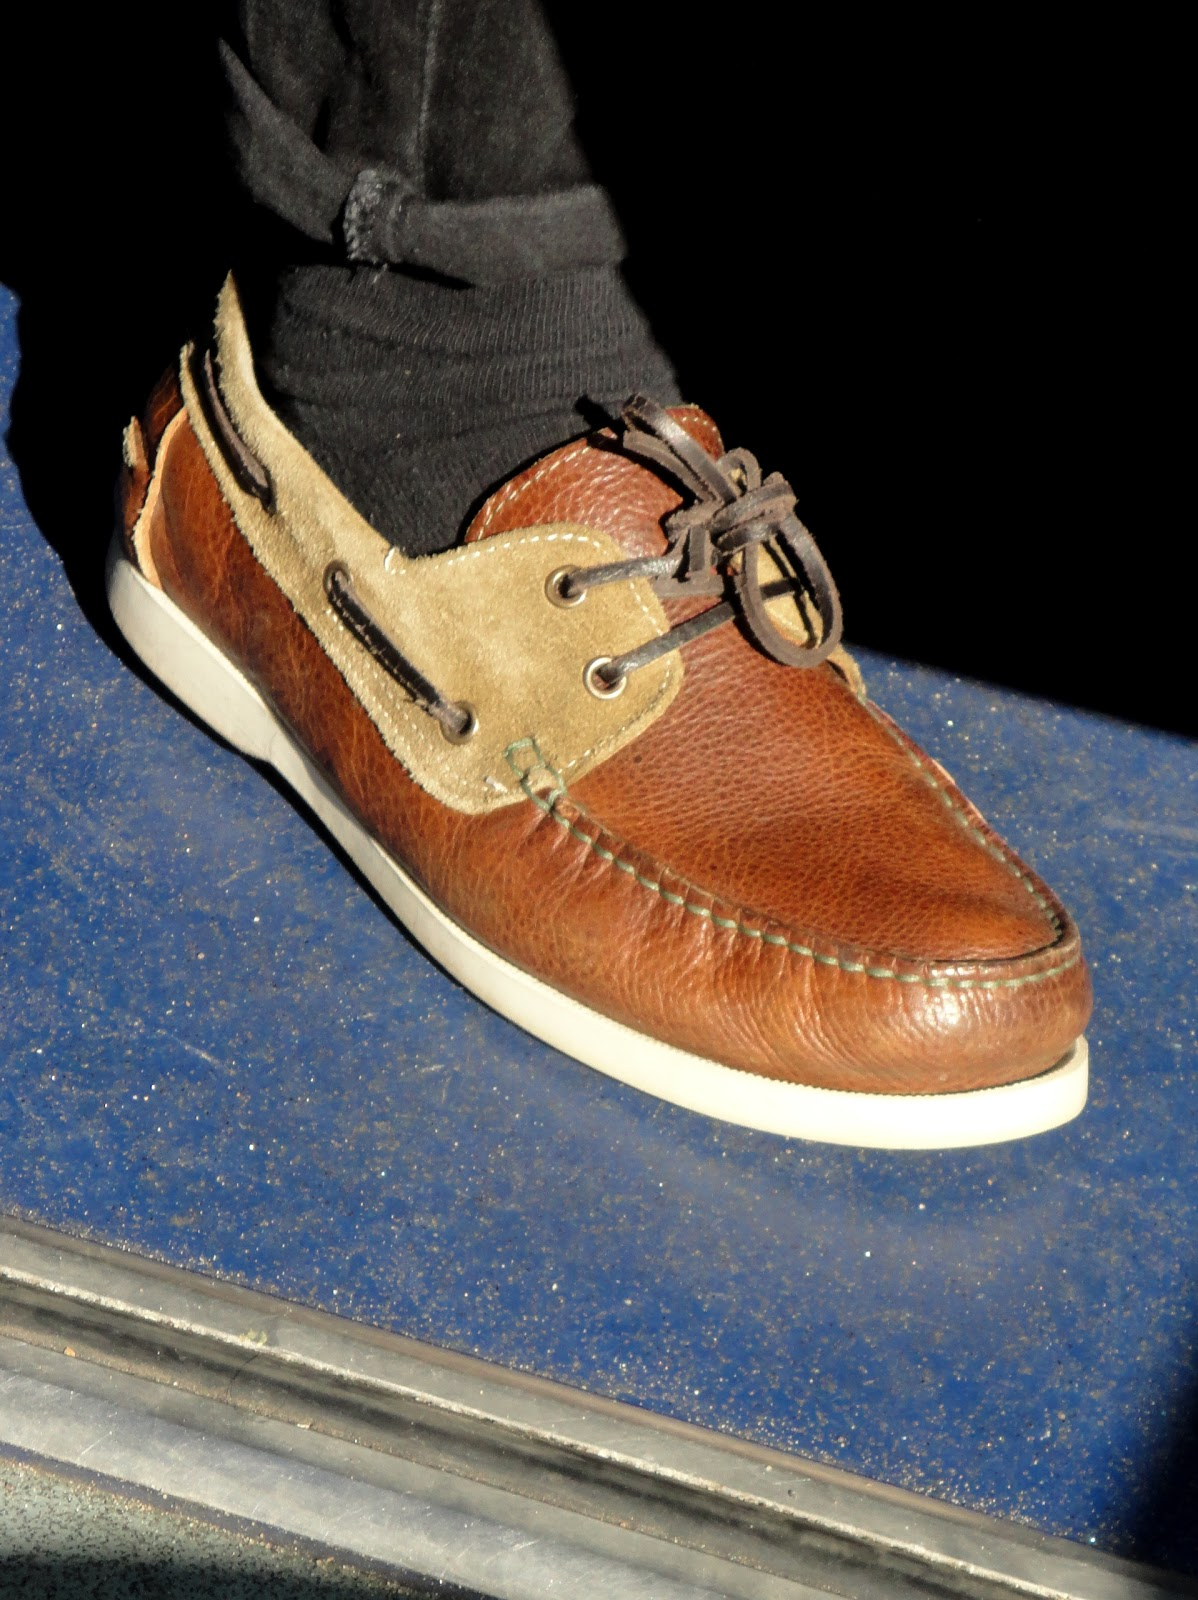 Brown Leather Boat Shoes Style